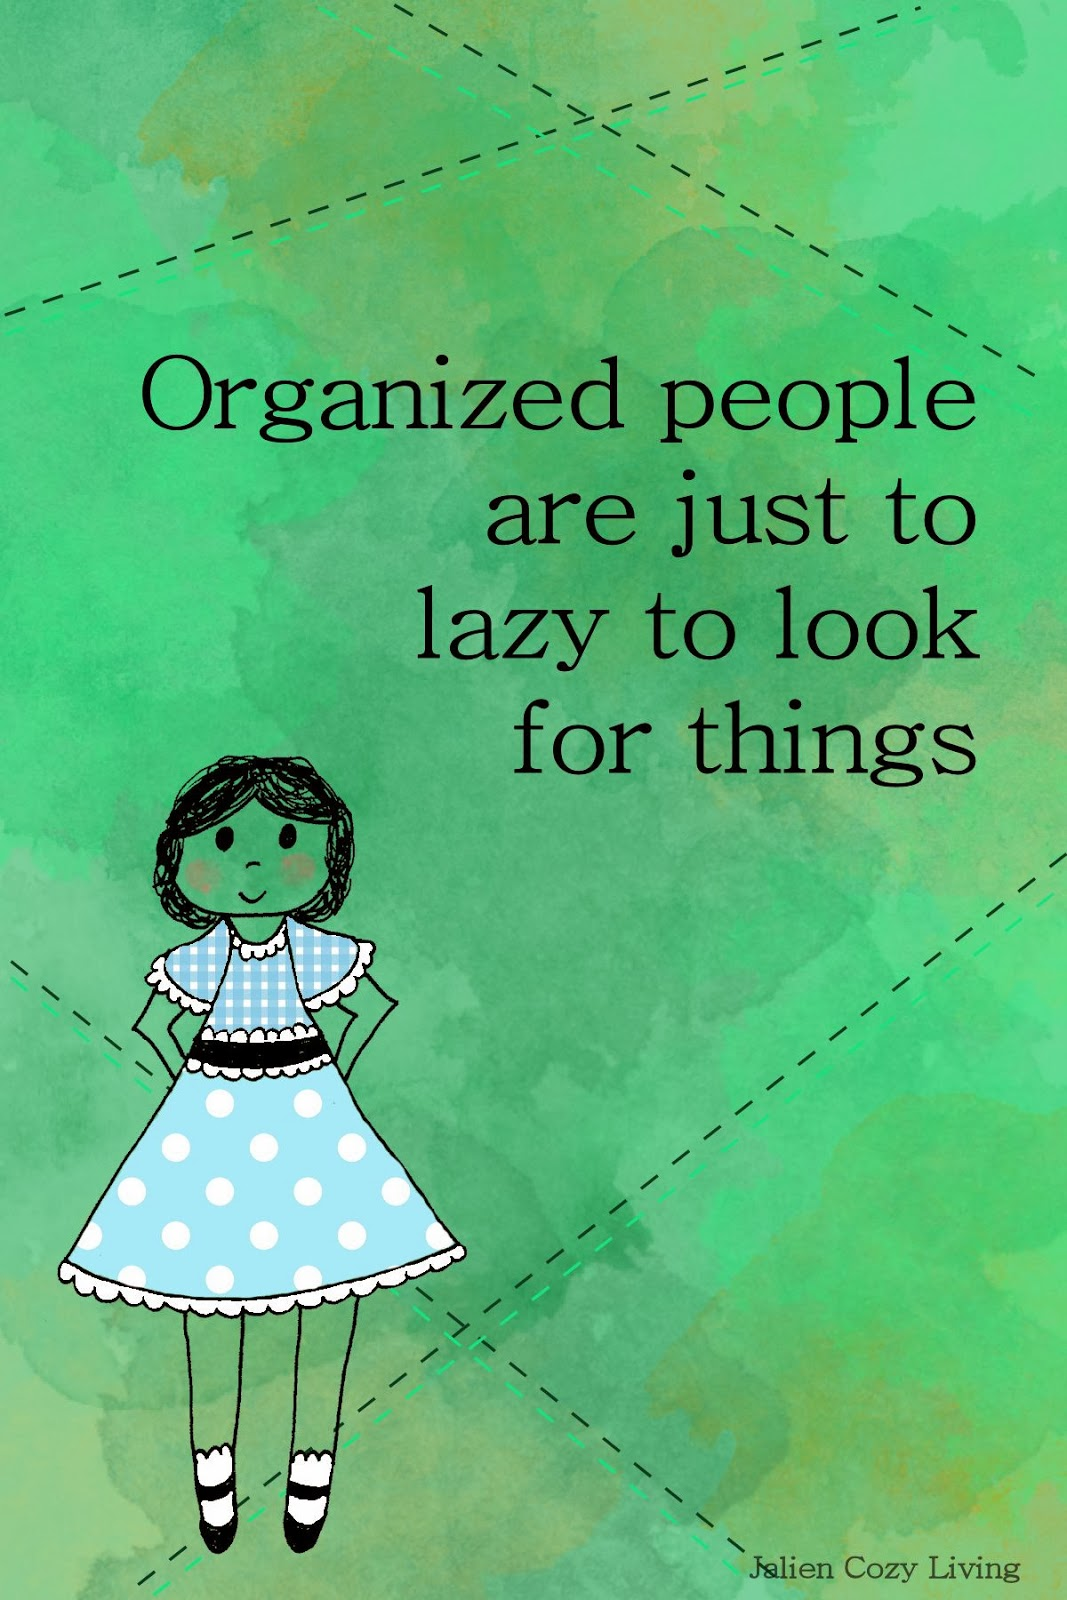 Quotes For Organized People Quotesgram